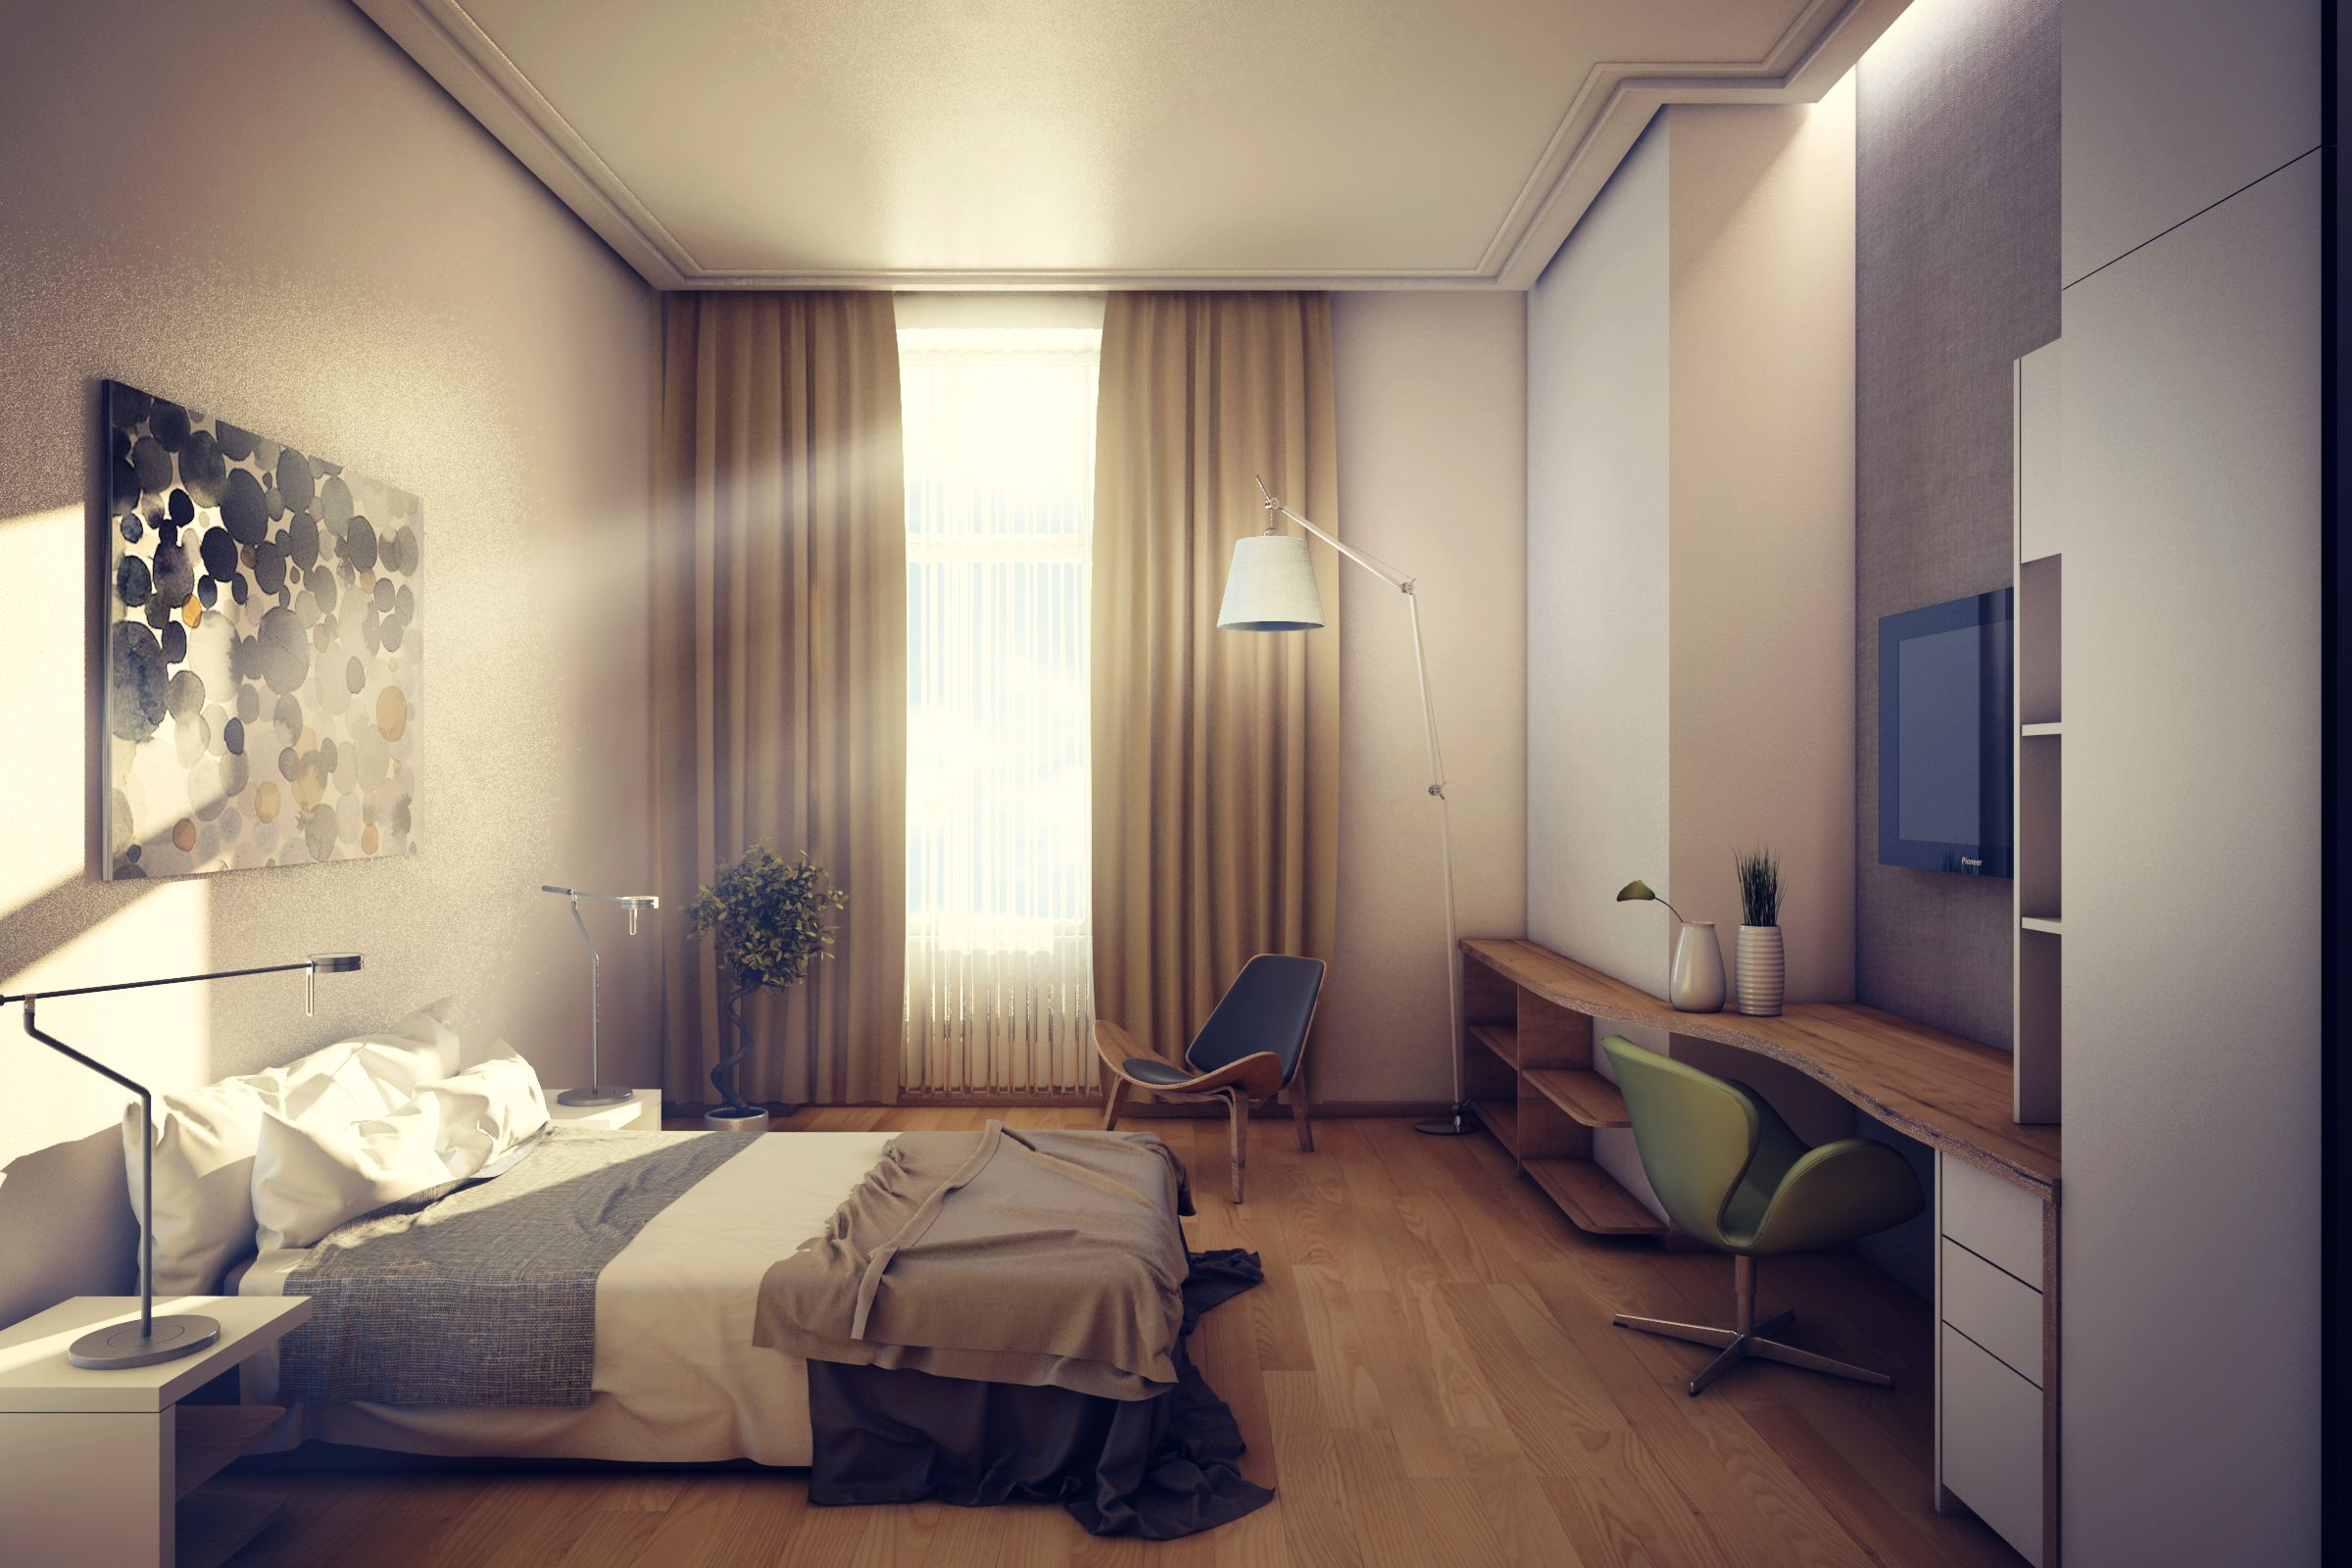 Hotel room - Interior design, 3D modelling, rendering and post ...